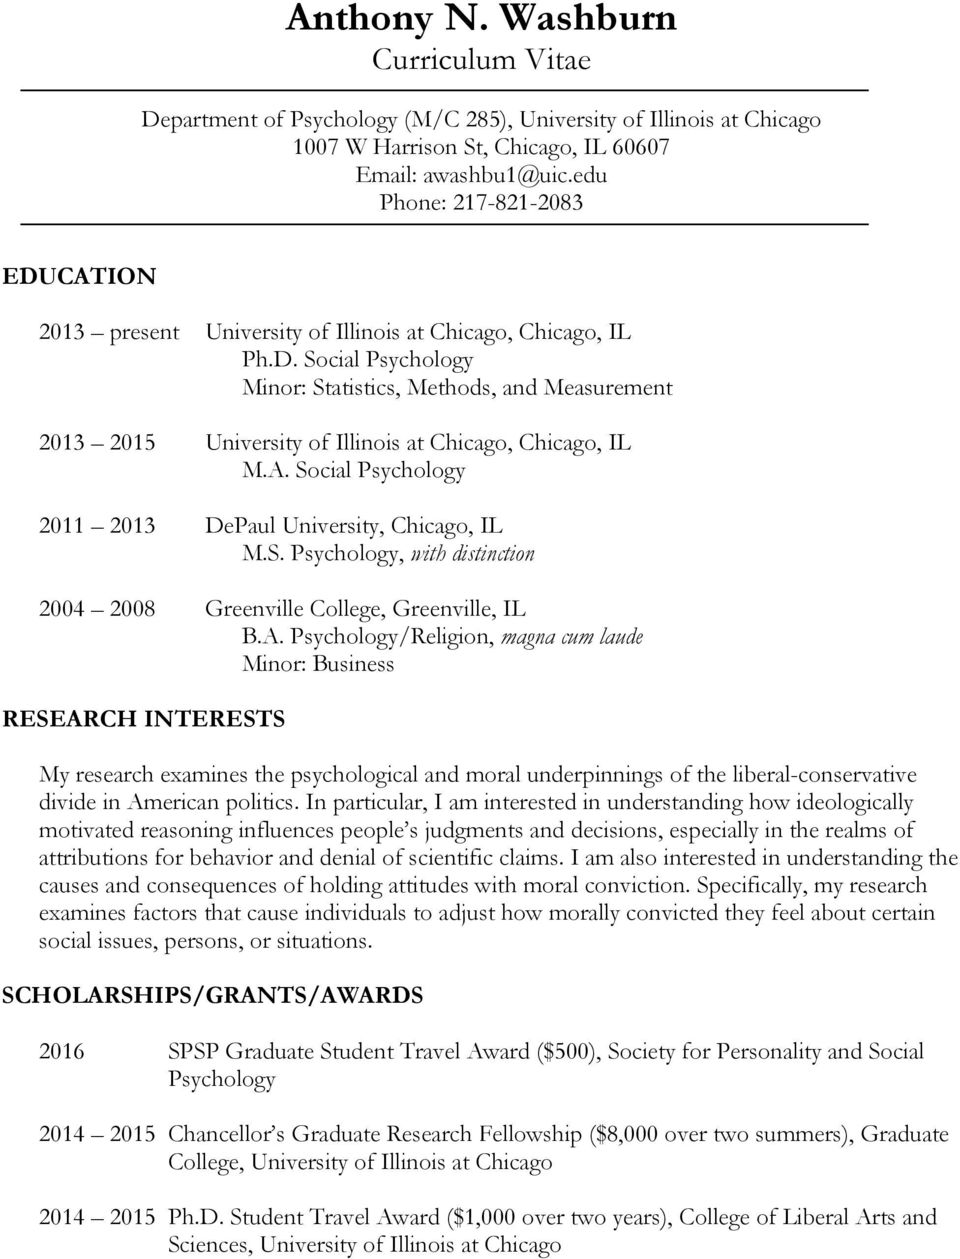 A. Social Psychology 2011 2013 DePaul University, Chicago, IL M.S. Psychology, with distinction 2004 2008 Greenville College, Greenville, IL B.A. Psychology/Religion, magna cum laude Minor: Business RESEARCH INTERESTS My research examines the psychological and moral underpinnings of the liberal-conservative divide in American politics.